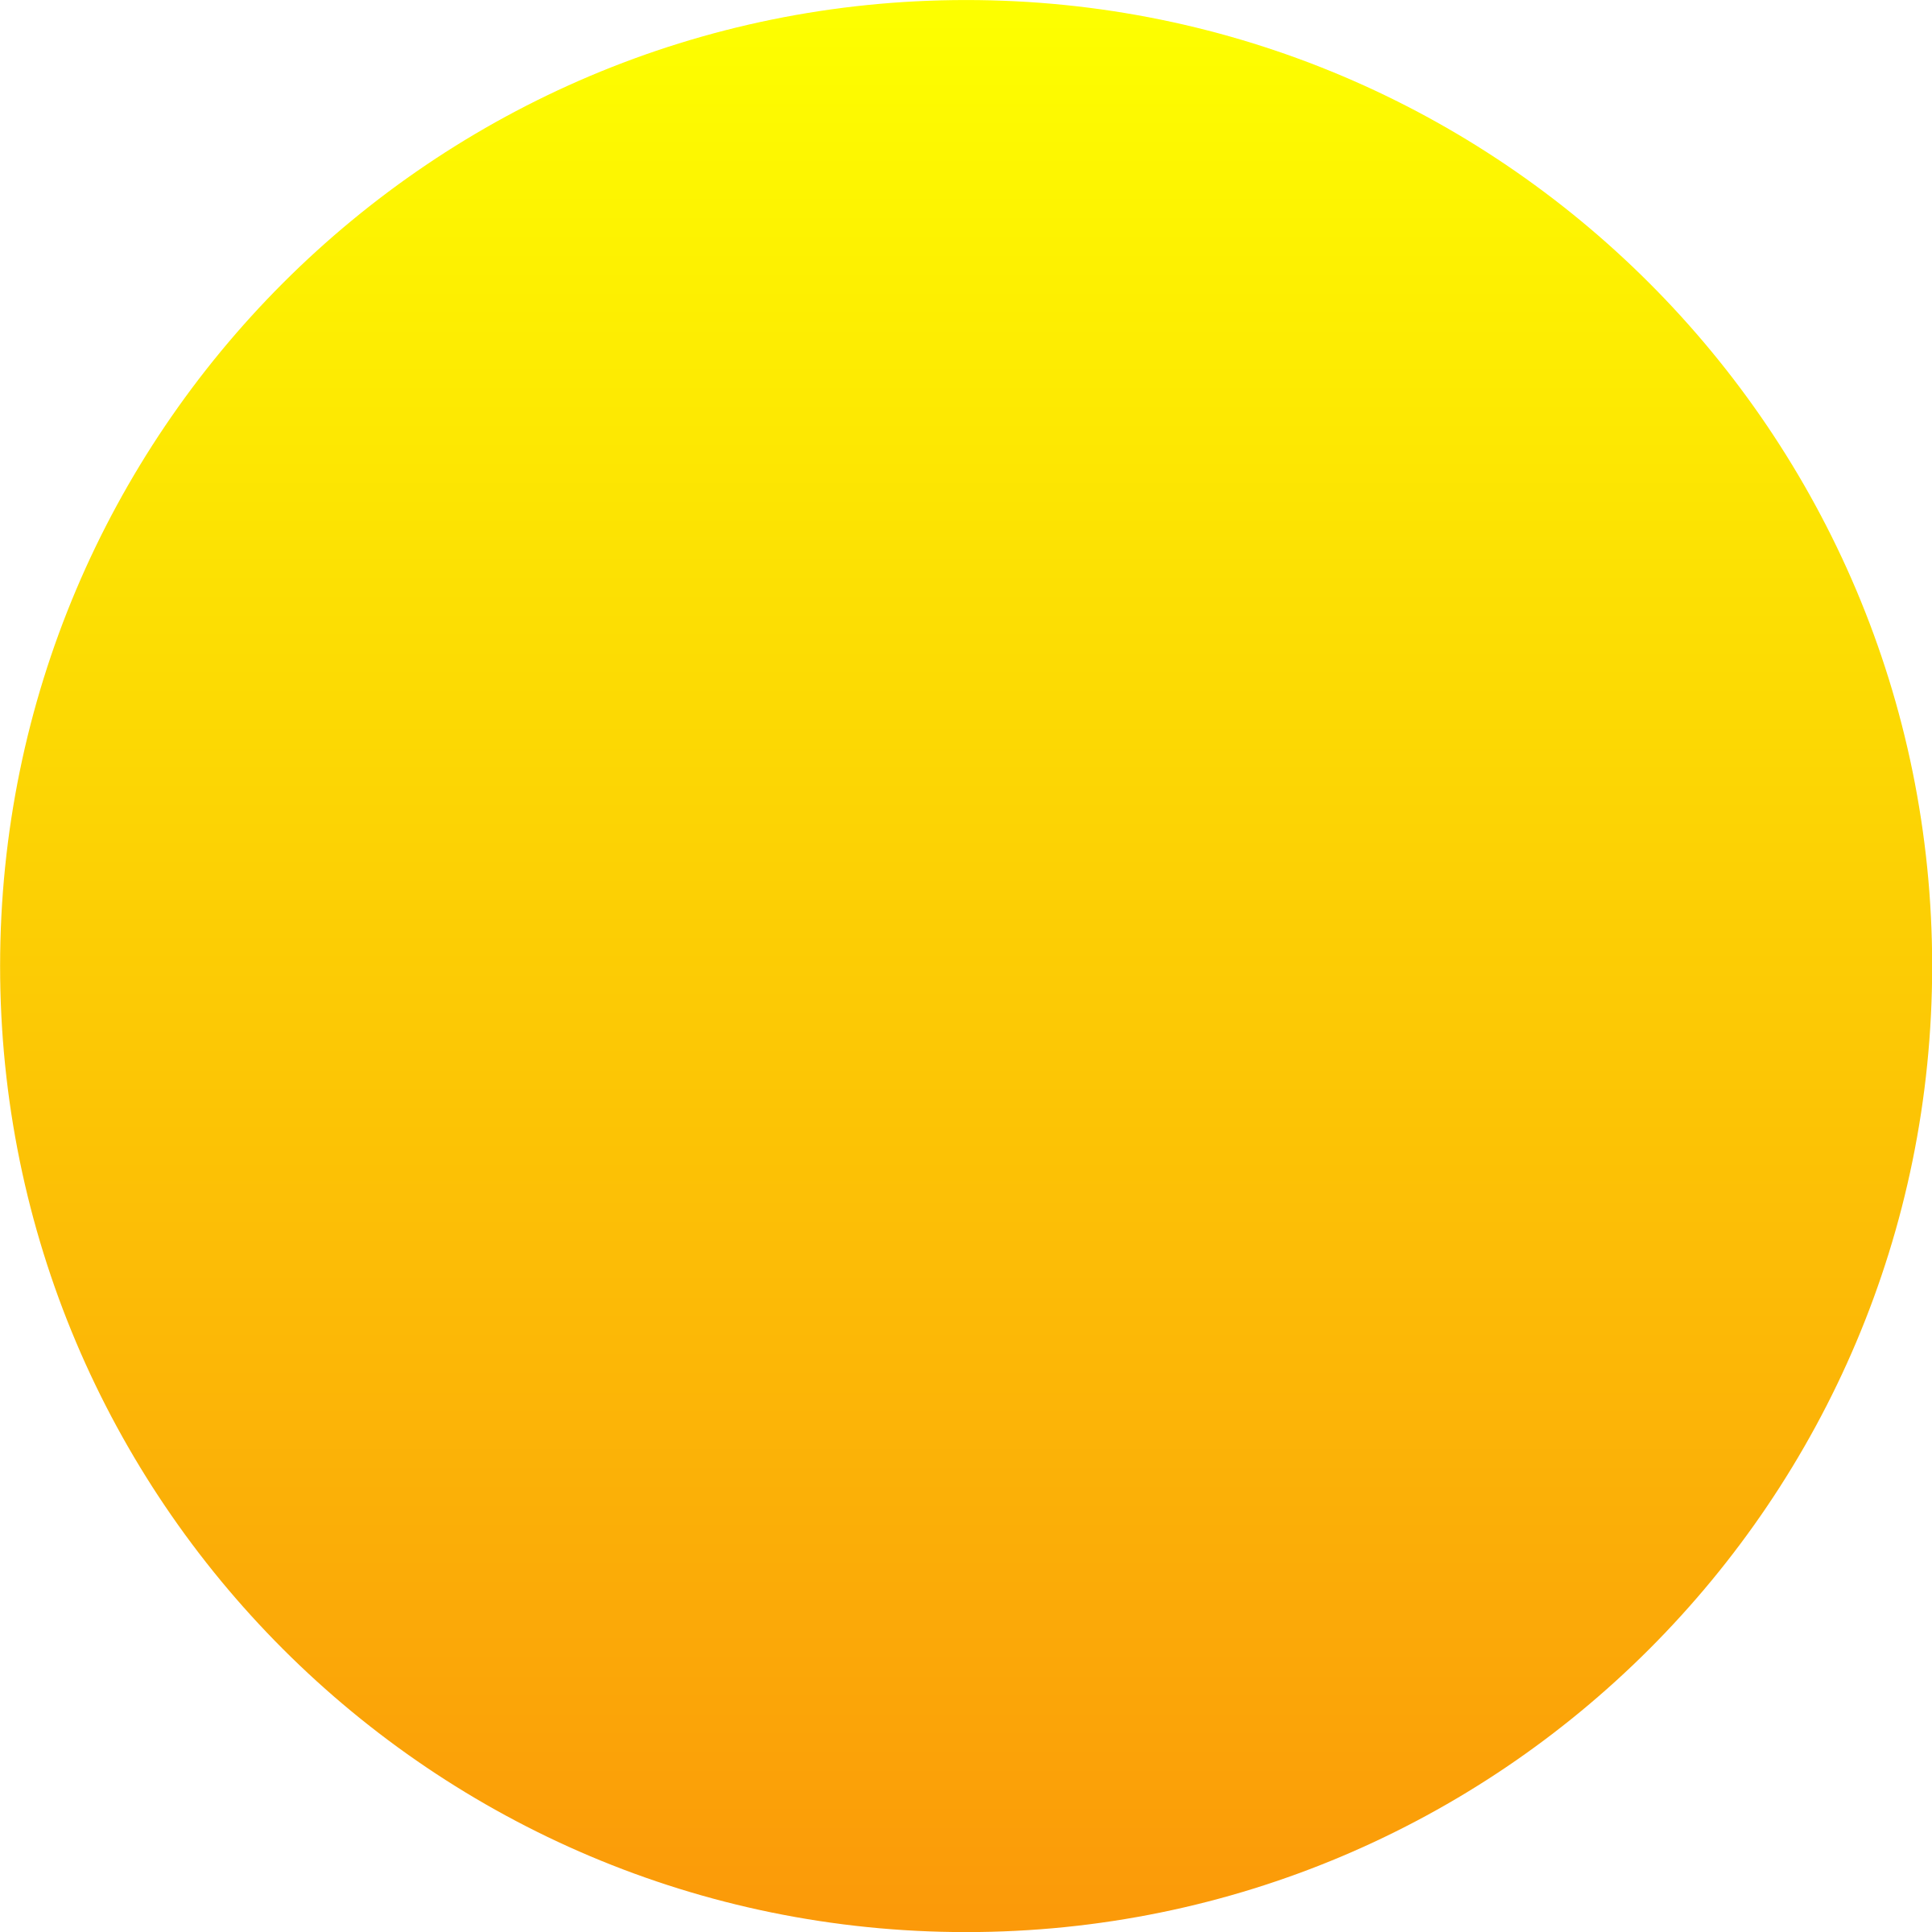 The Ball Is Round Yellow Sun Pictures Download Free Sun Transparent Png Images For Your Works This Is Image Is Cle In 2020 Png Photo Png Boy Baby Shower Centerpieces